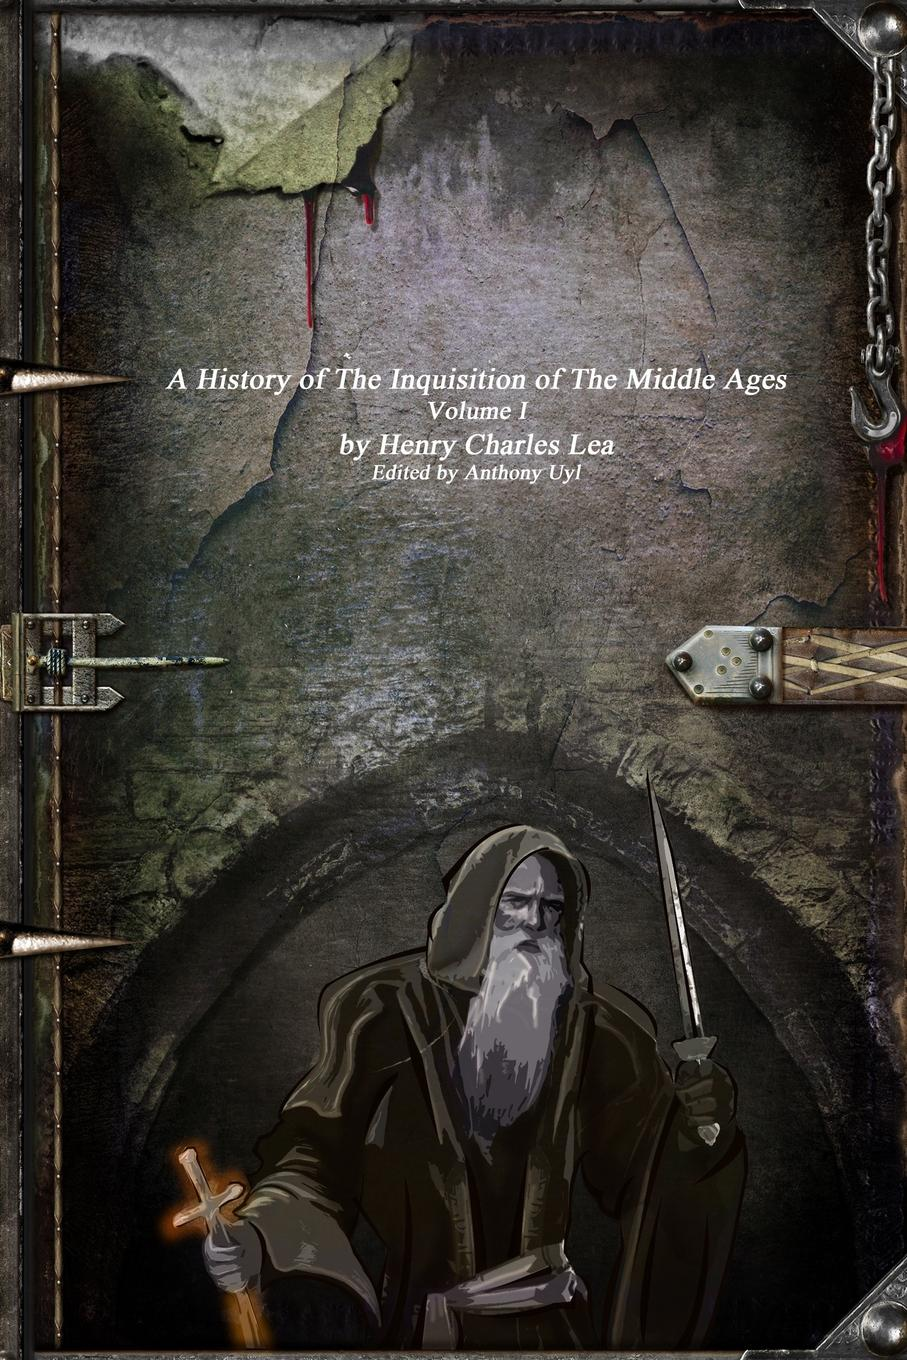 Henry Charles Lea A History of the Inquisition of the Middle Ages dominion of god – christendom and apocalypse in the middle ages